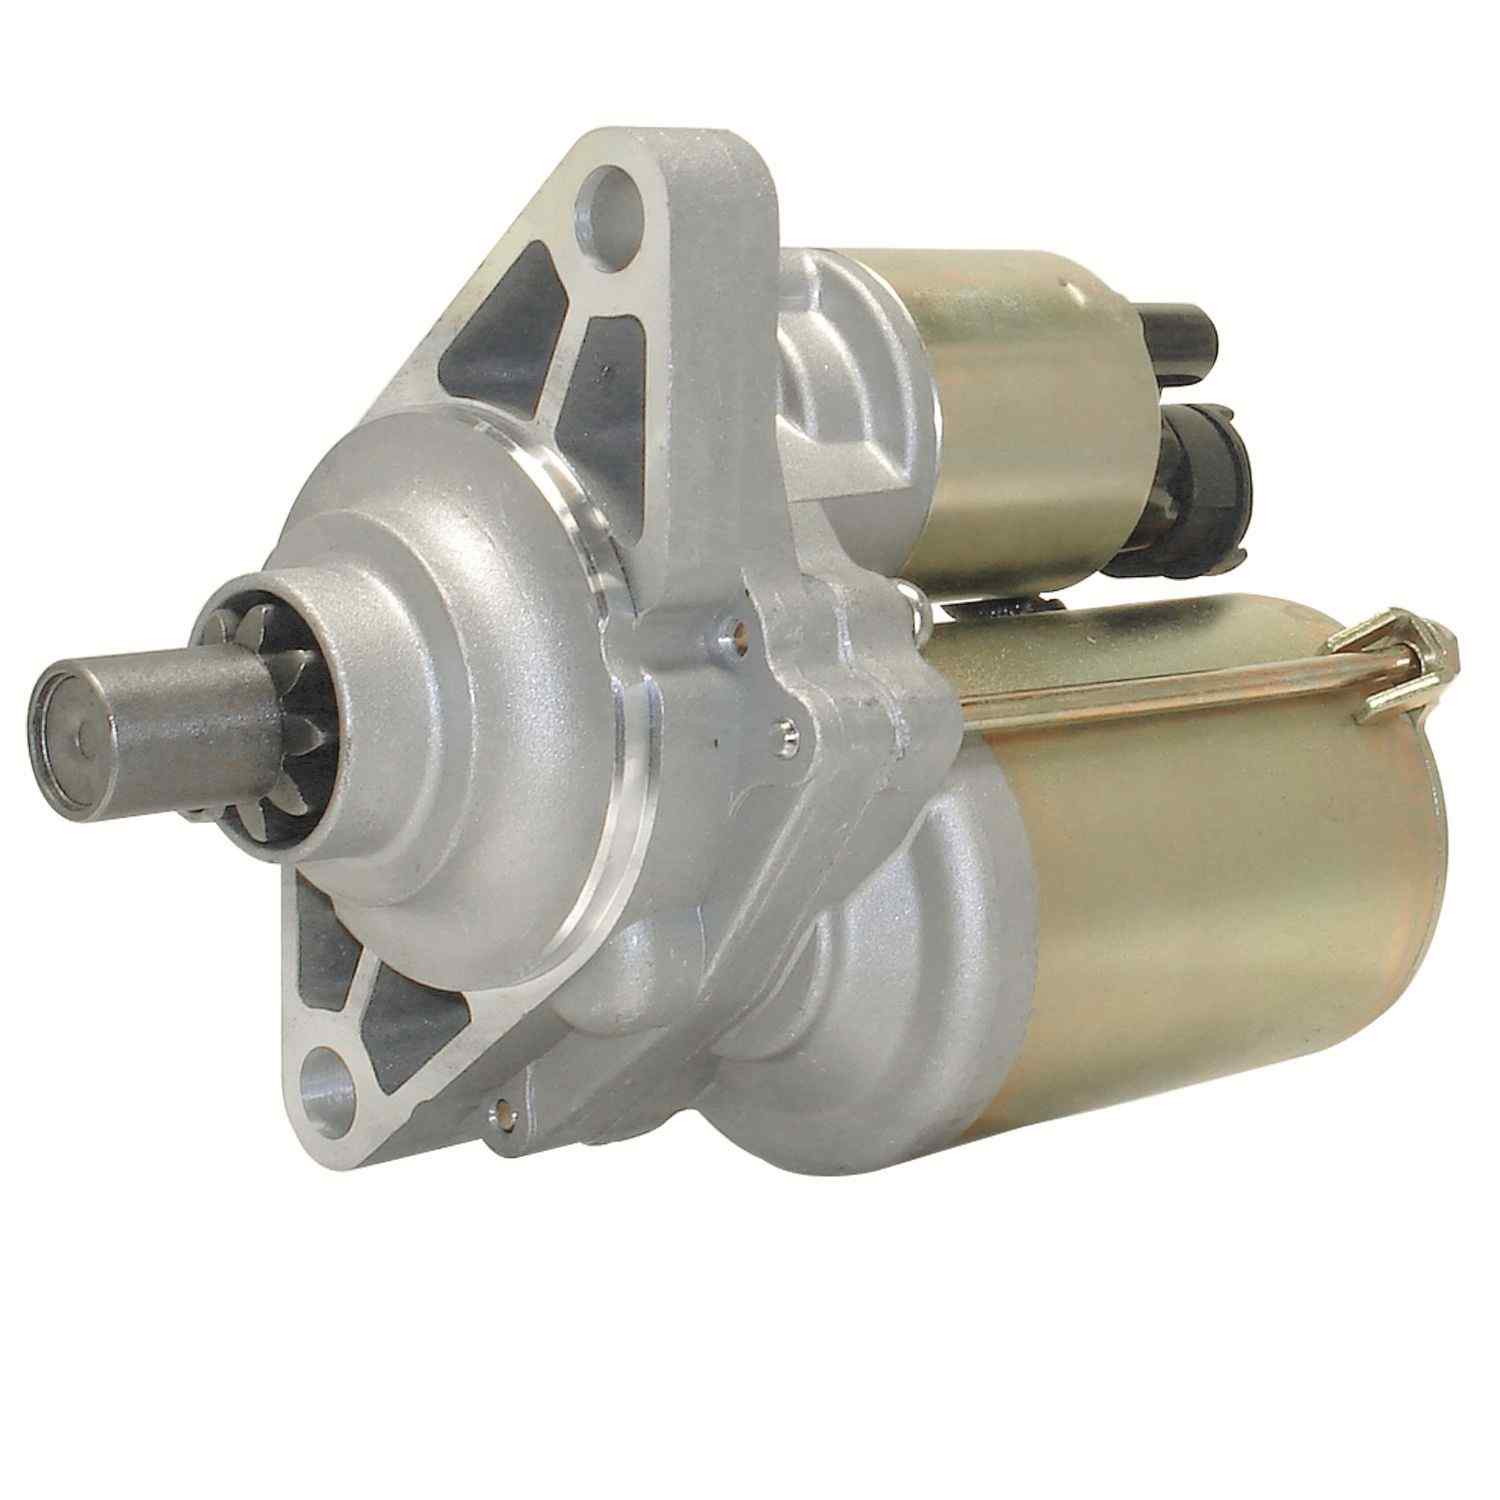 ACDELCO GOLD/PROFESSIONAL - Reman Starter Motor - DCC 336-1670A